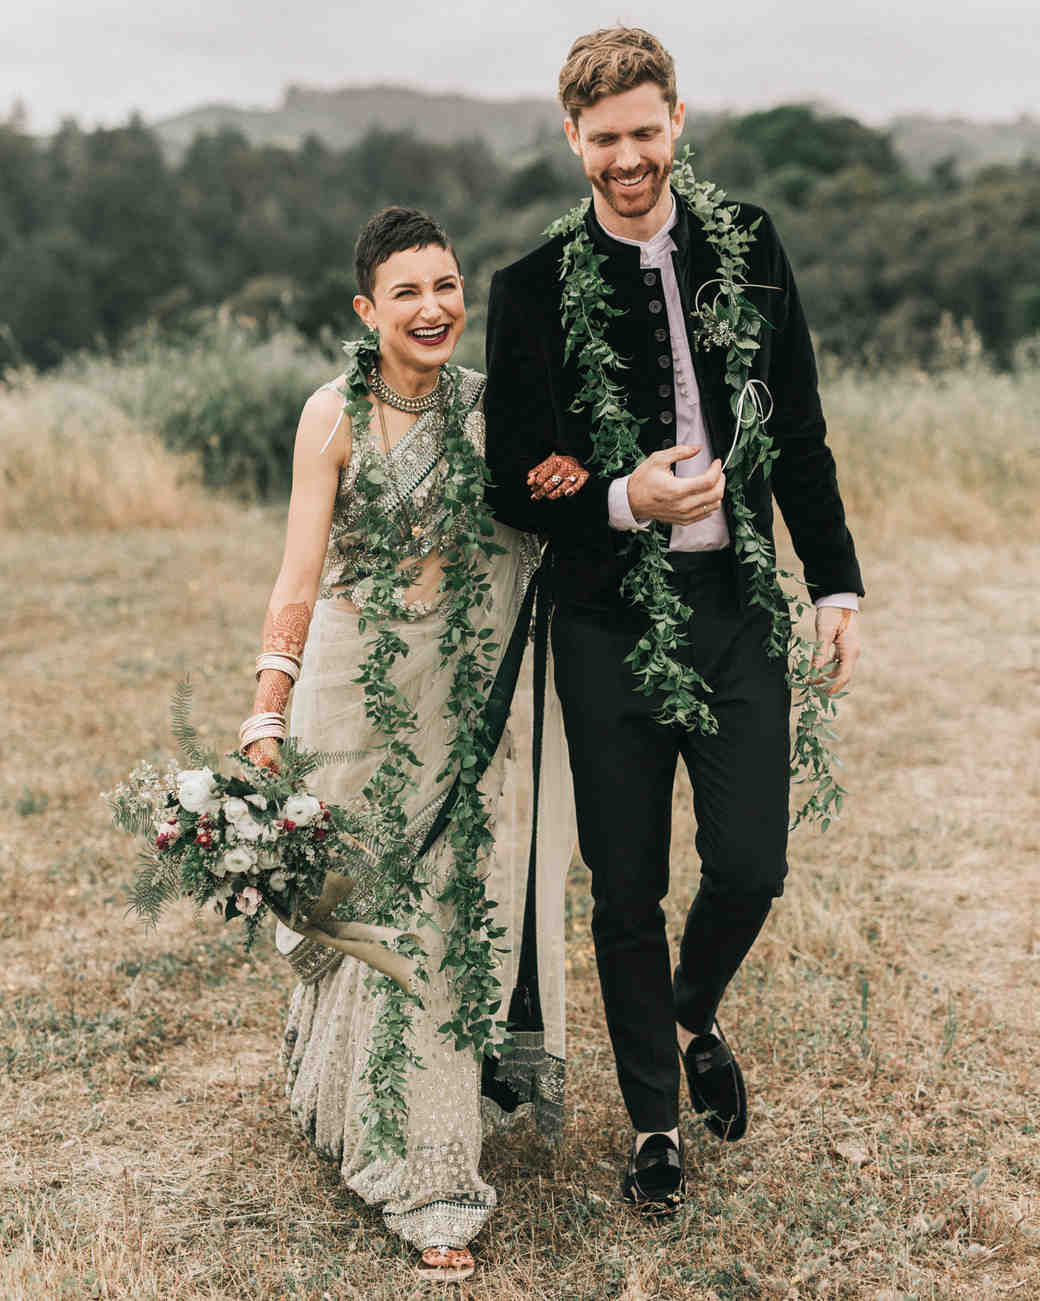 zai phil camping wedding couple smile arm in arm